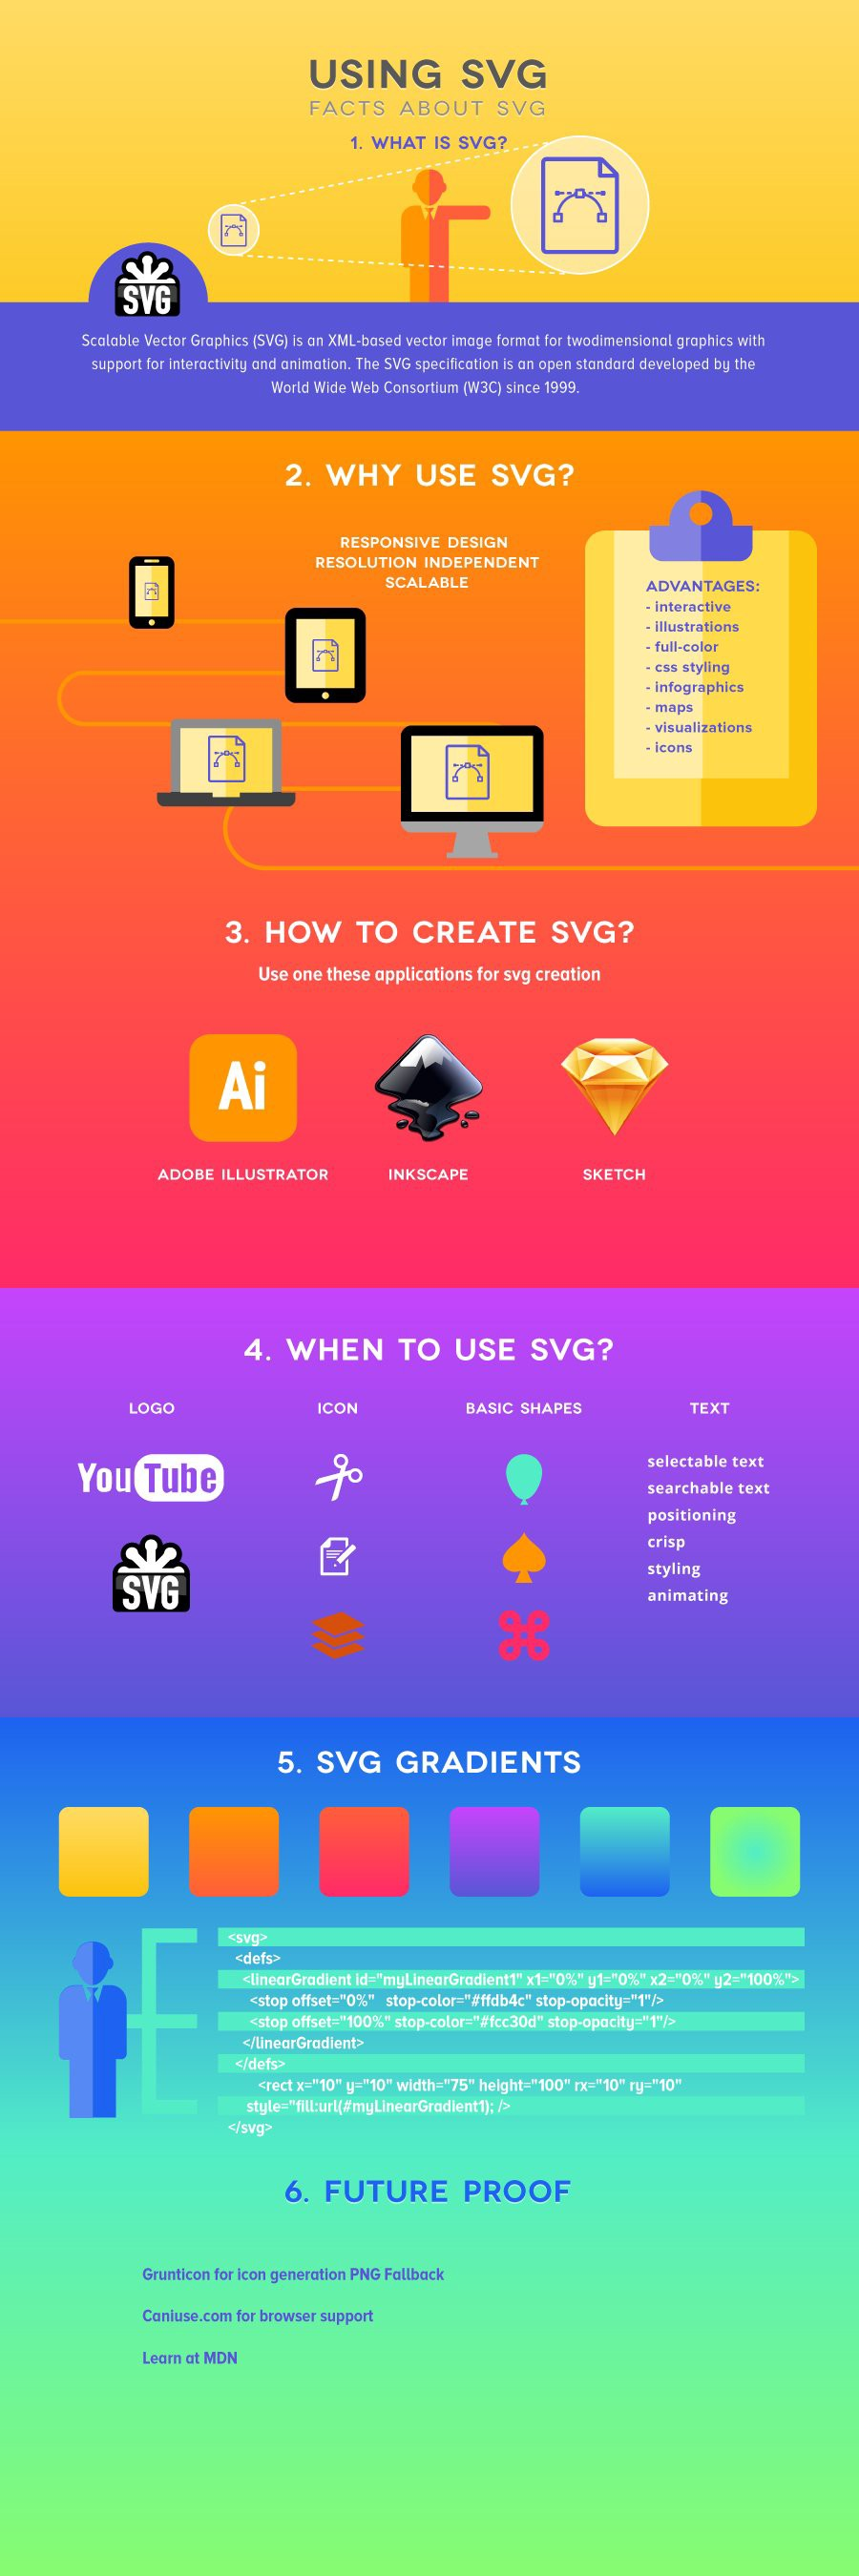 Using SVG for creating a infographic